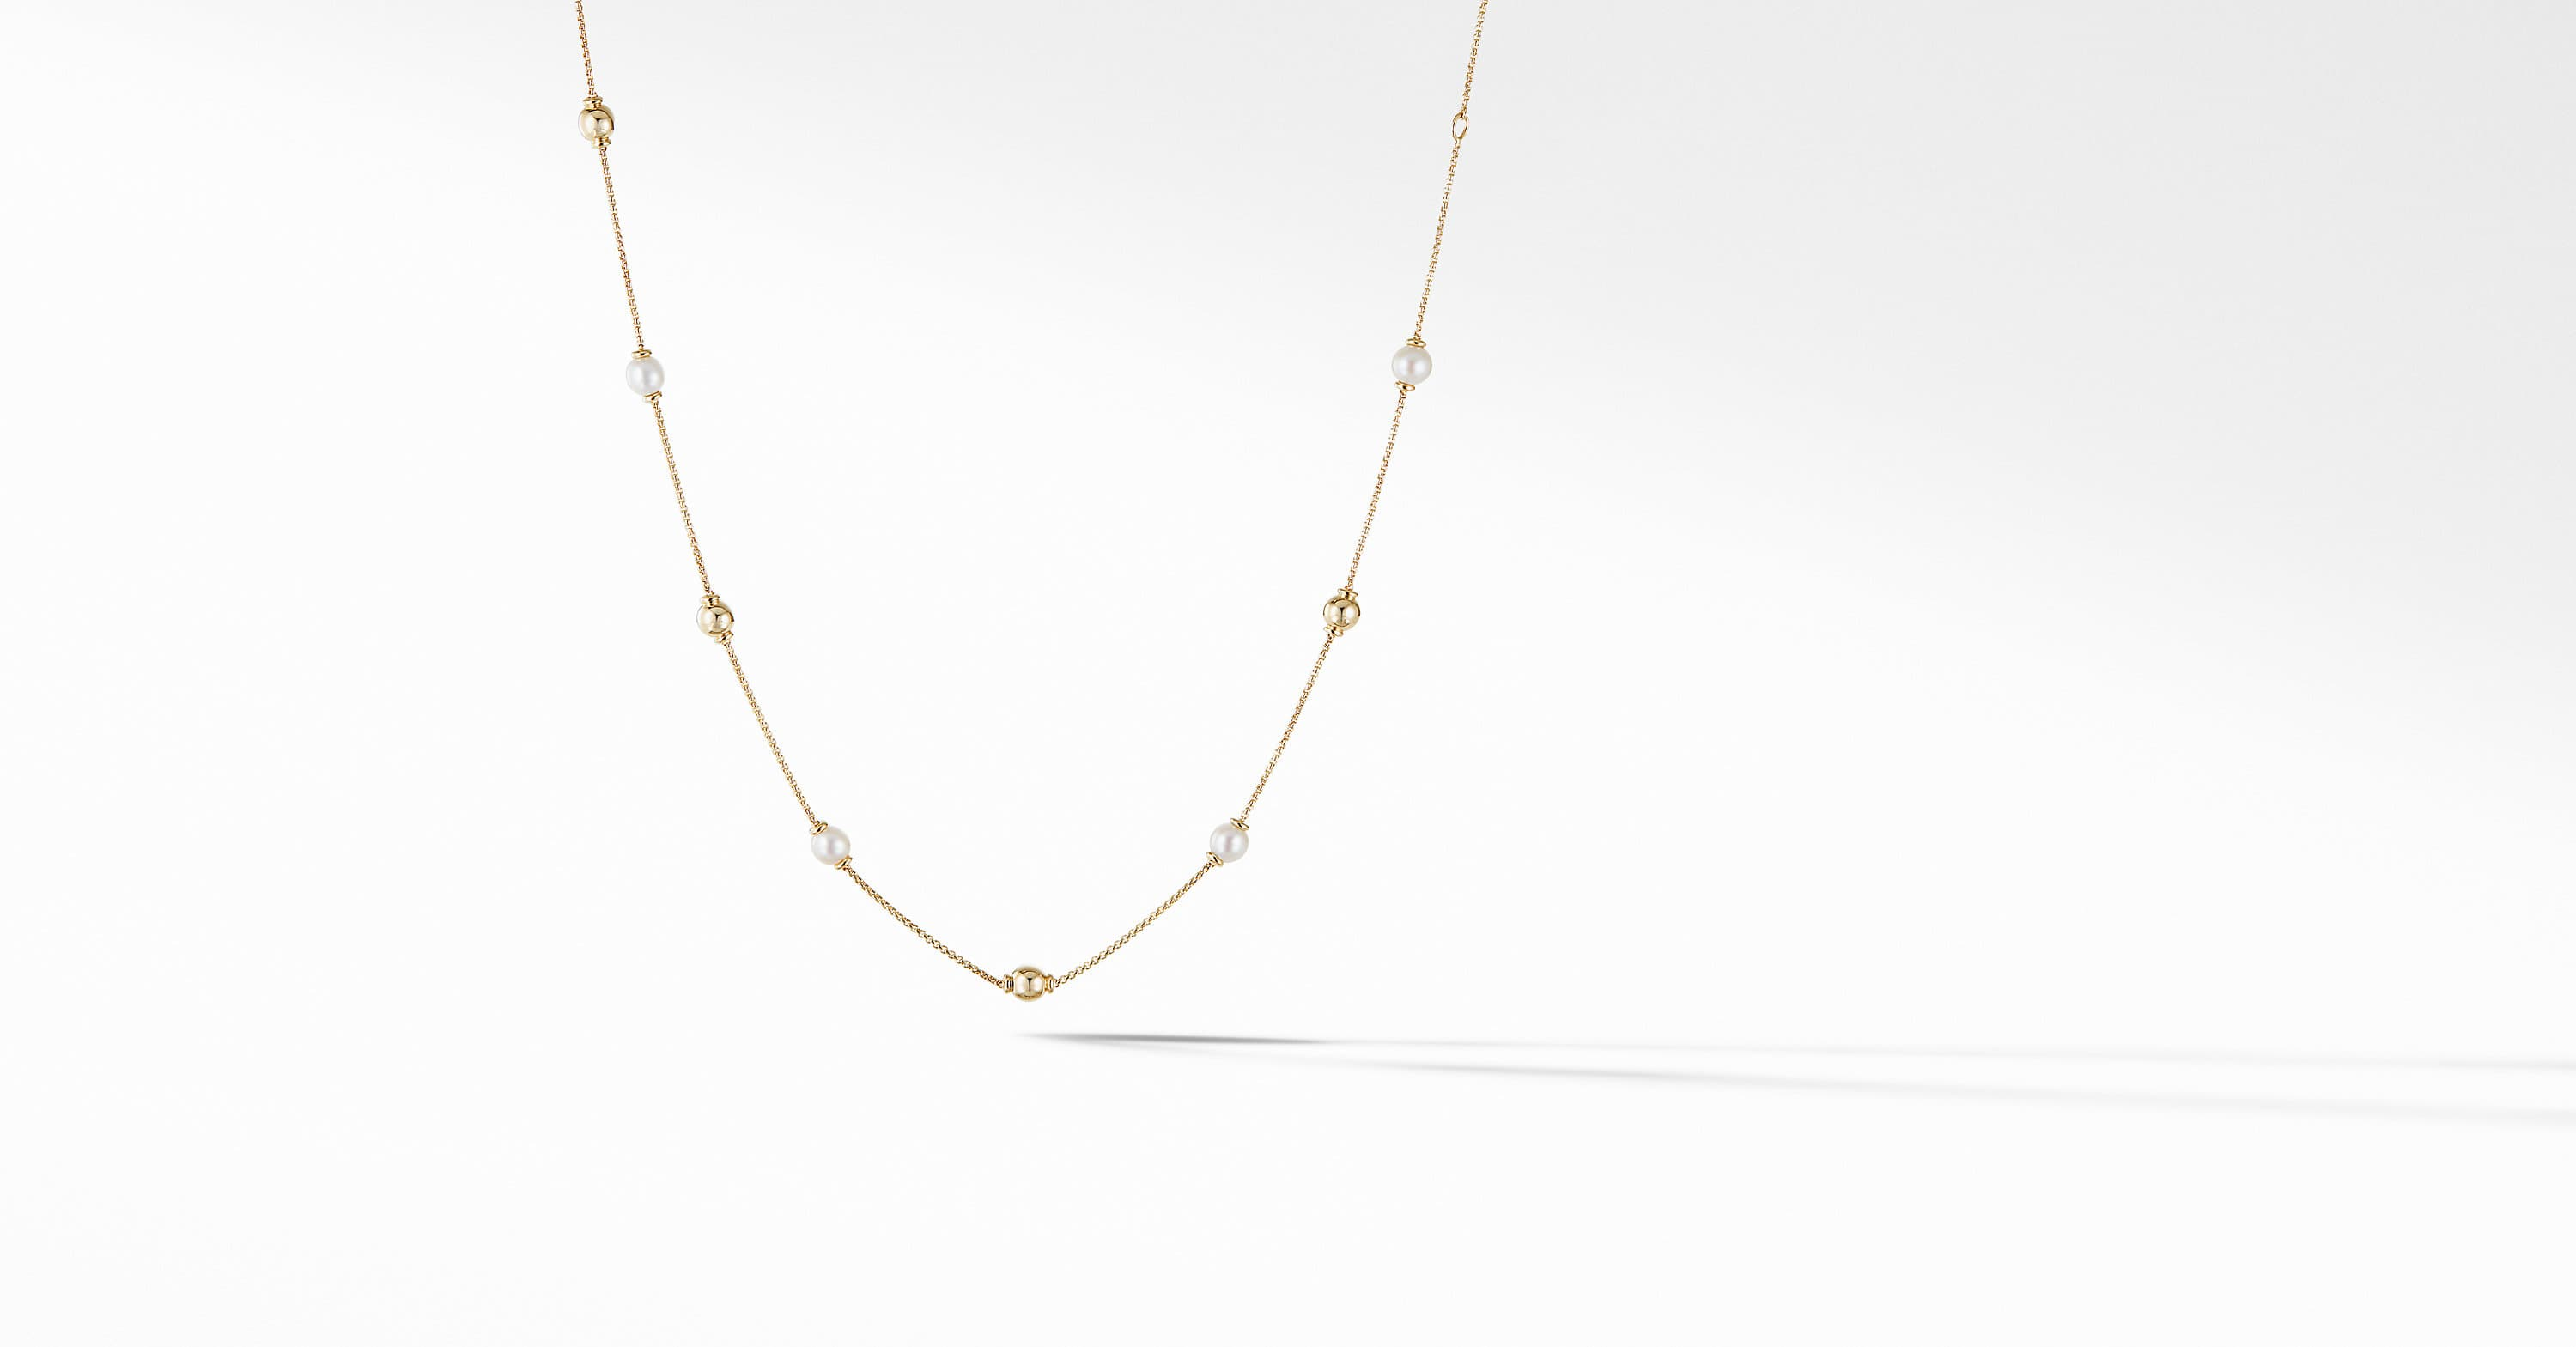 Solari Short Station Necklace in 18K Yellow Gold